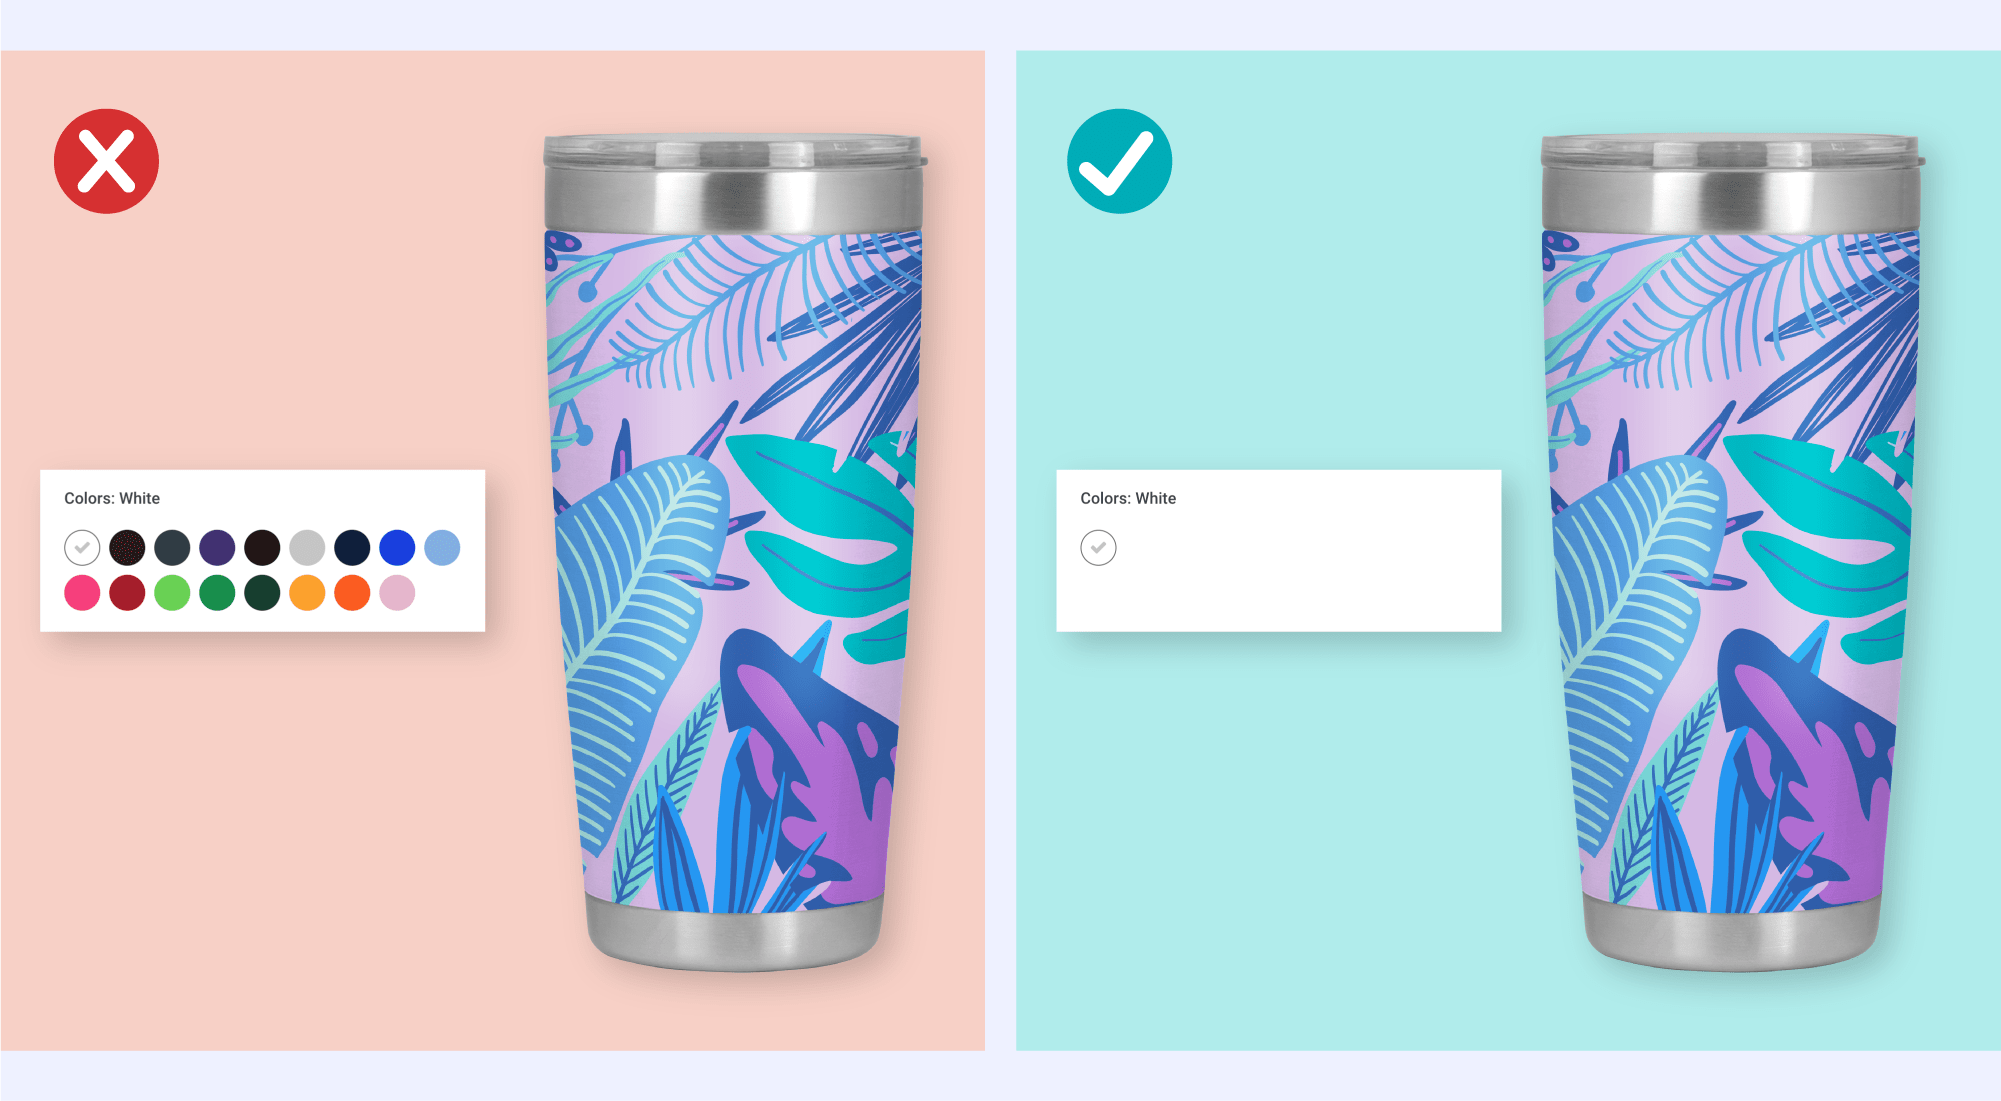 Artwork with multiple color options